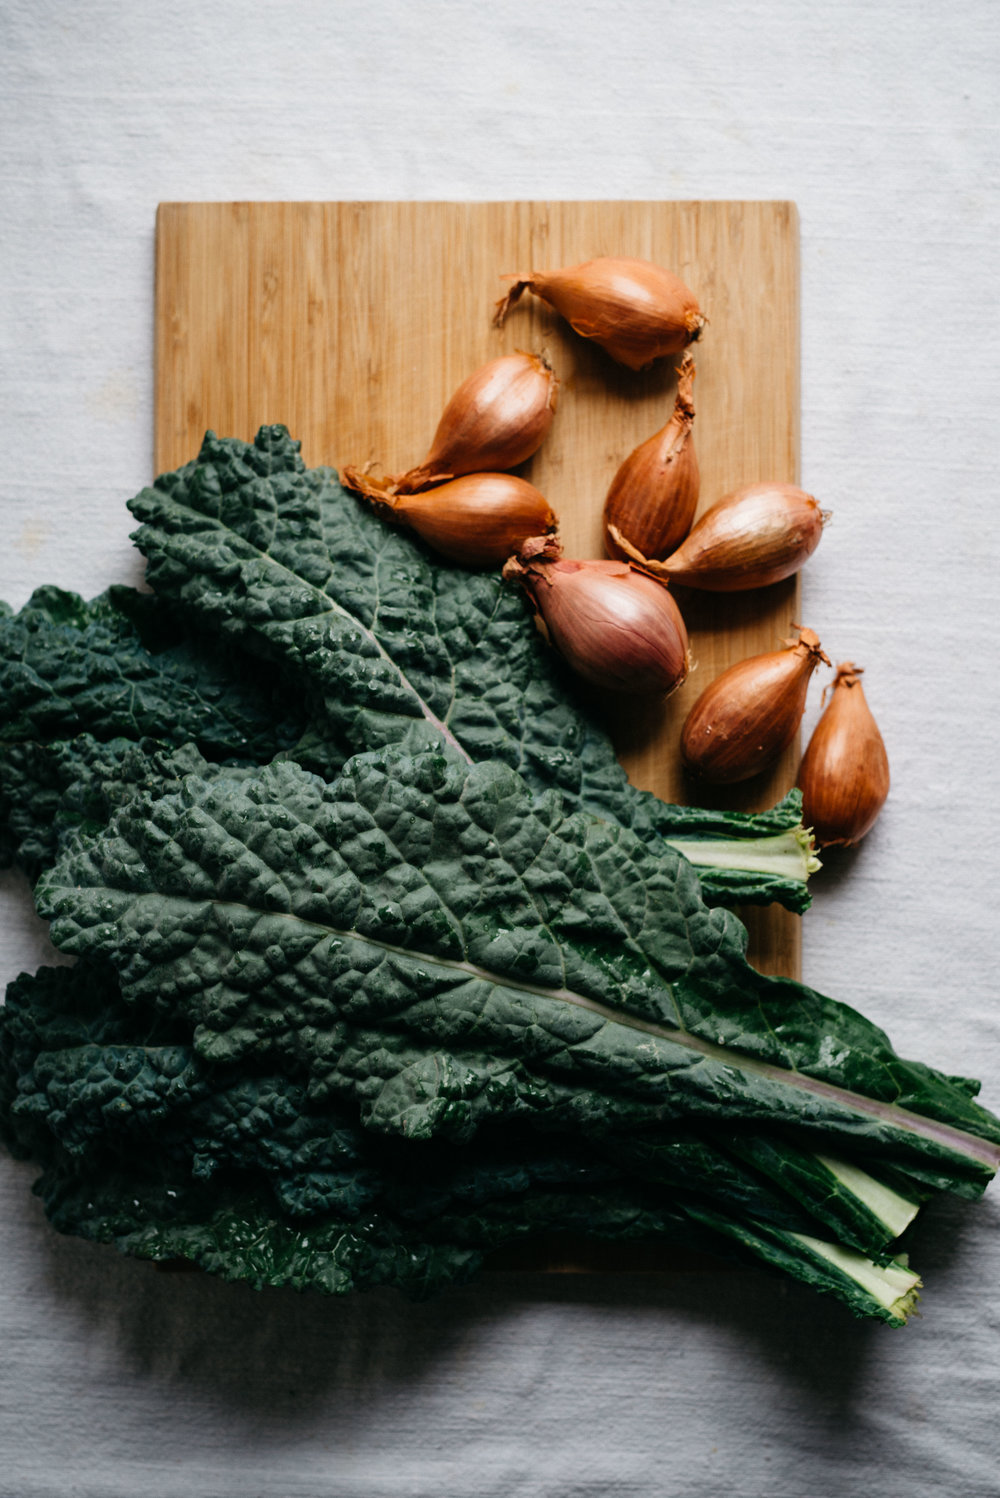 Shallots & Kale | dolly and oatmeal